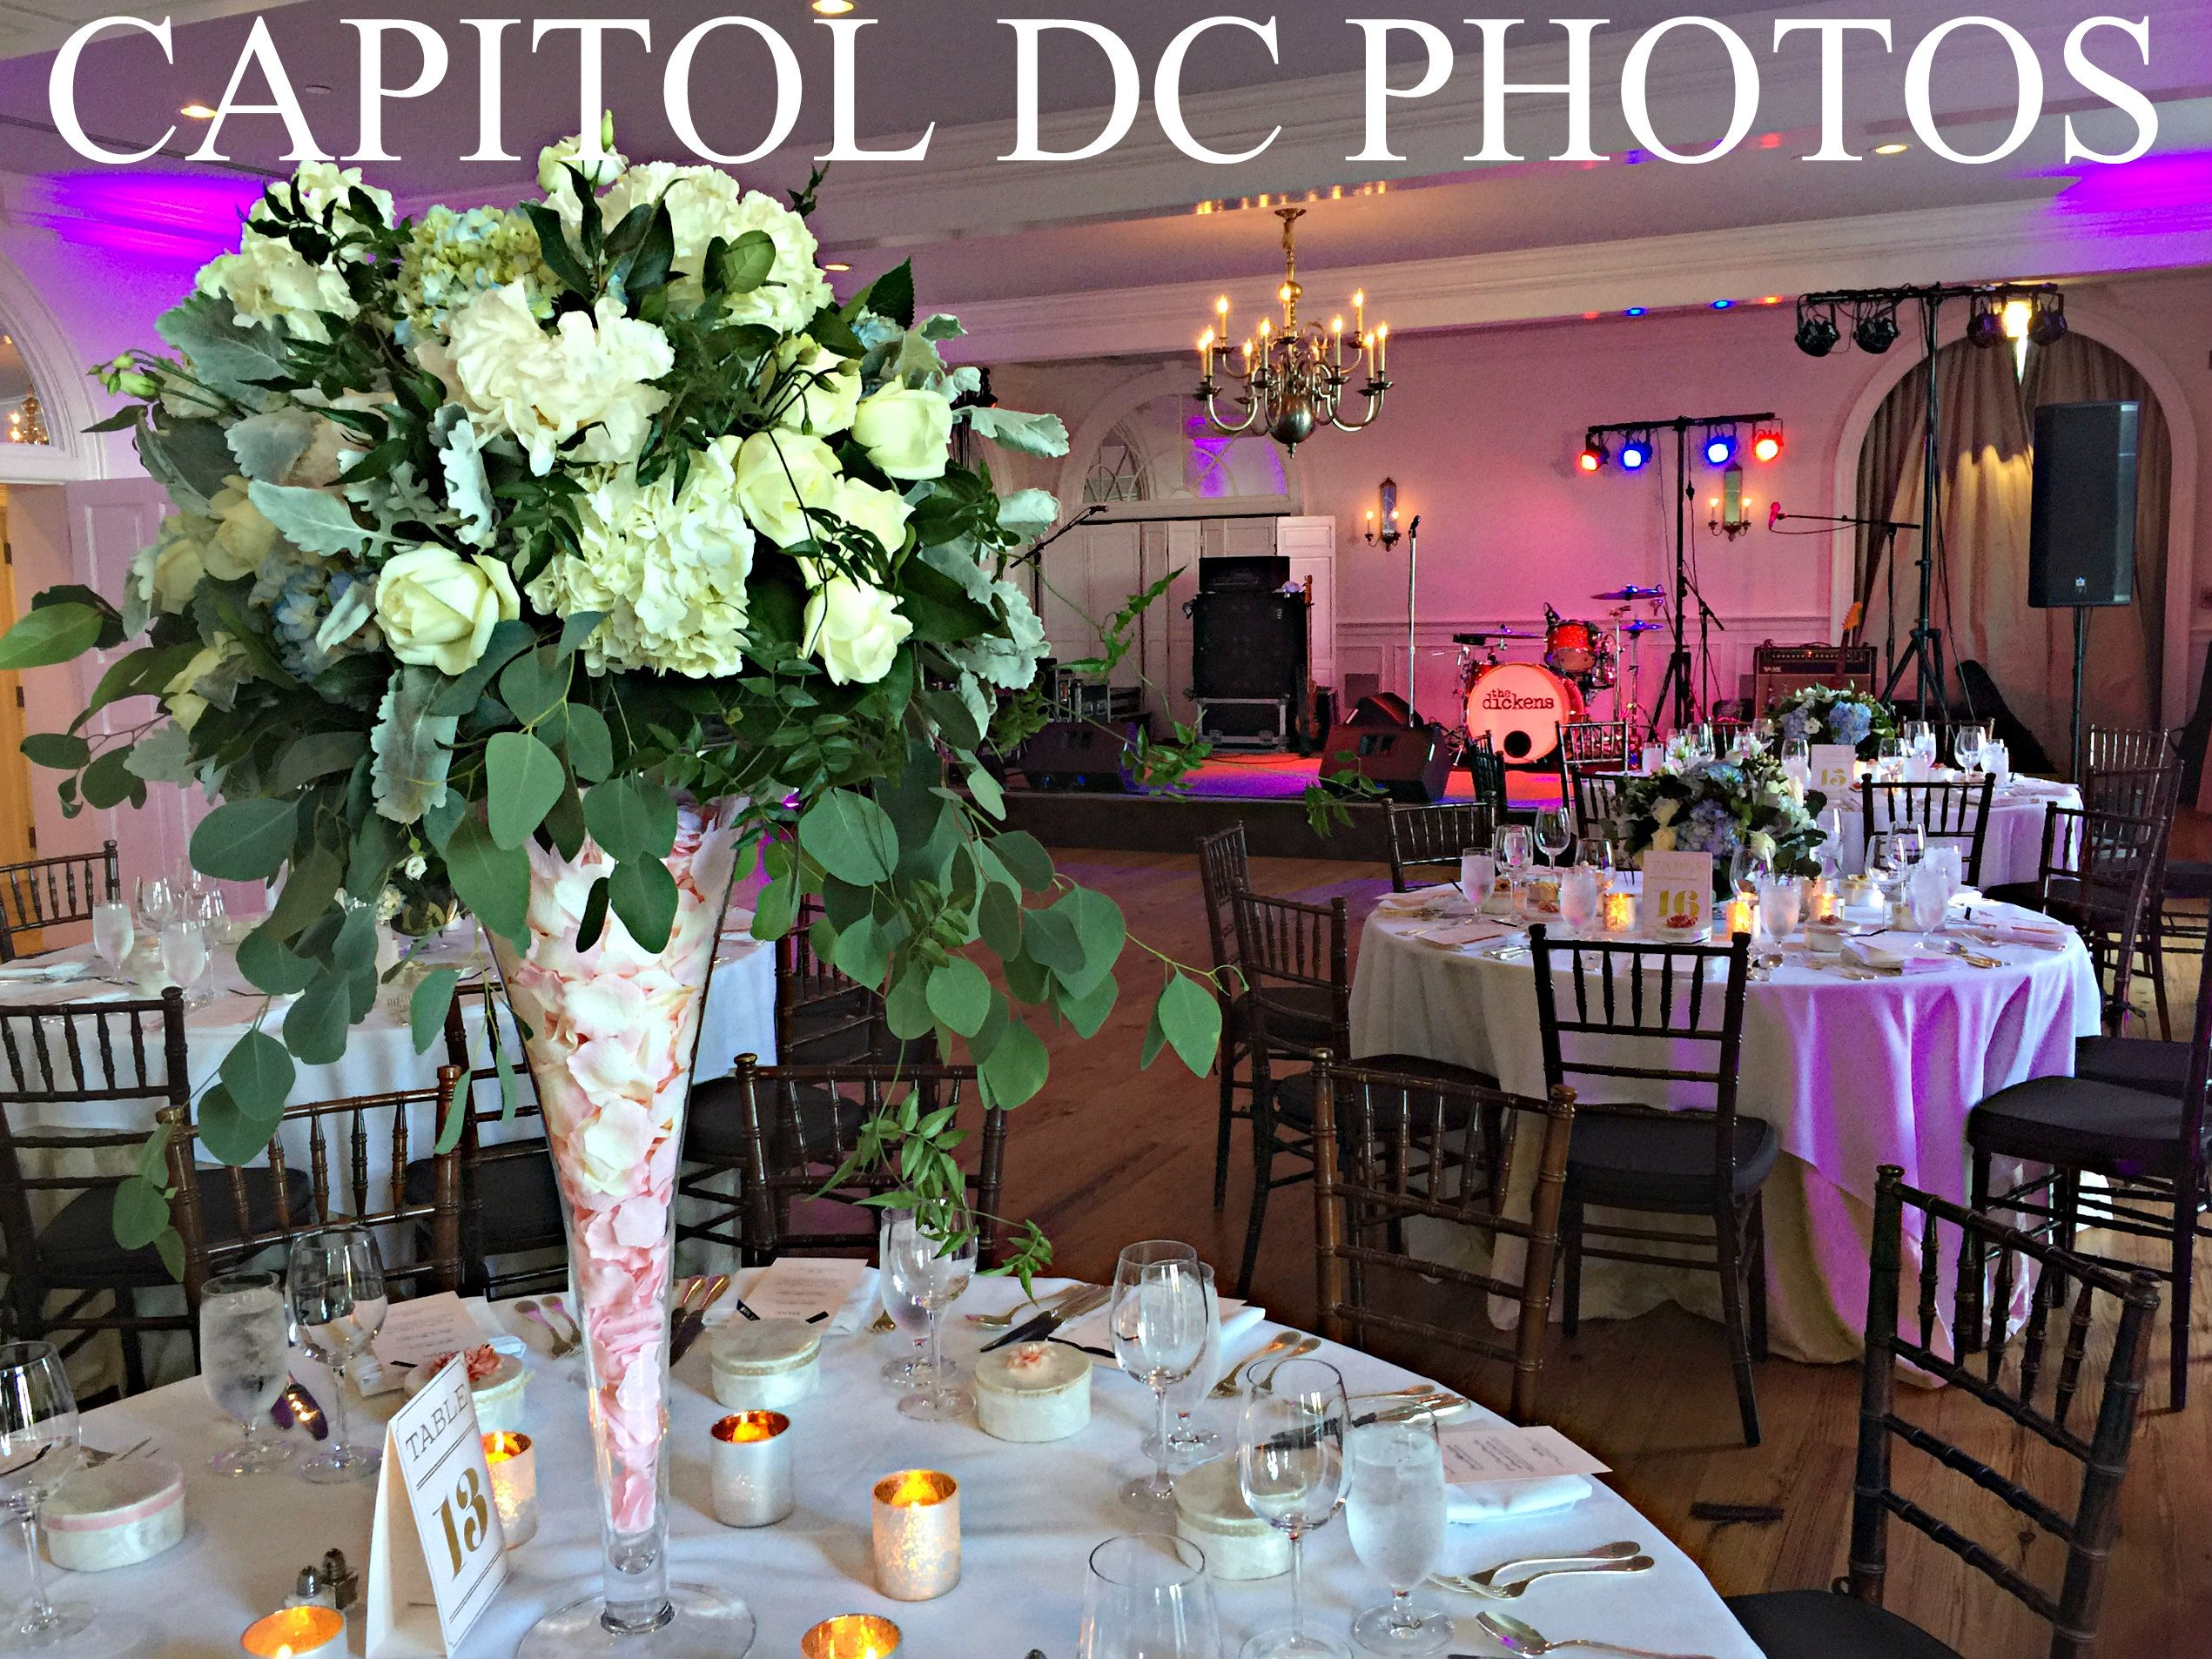 One Stop Wedding Shop All Your Wedding Needs Under One Roof Capitol Dc Photos Event Company Wedding Bar Bat Mitzvah